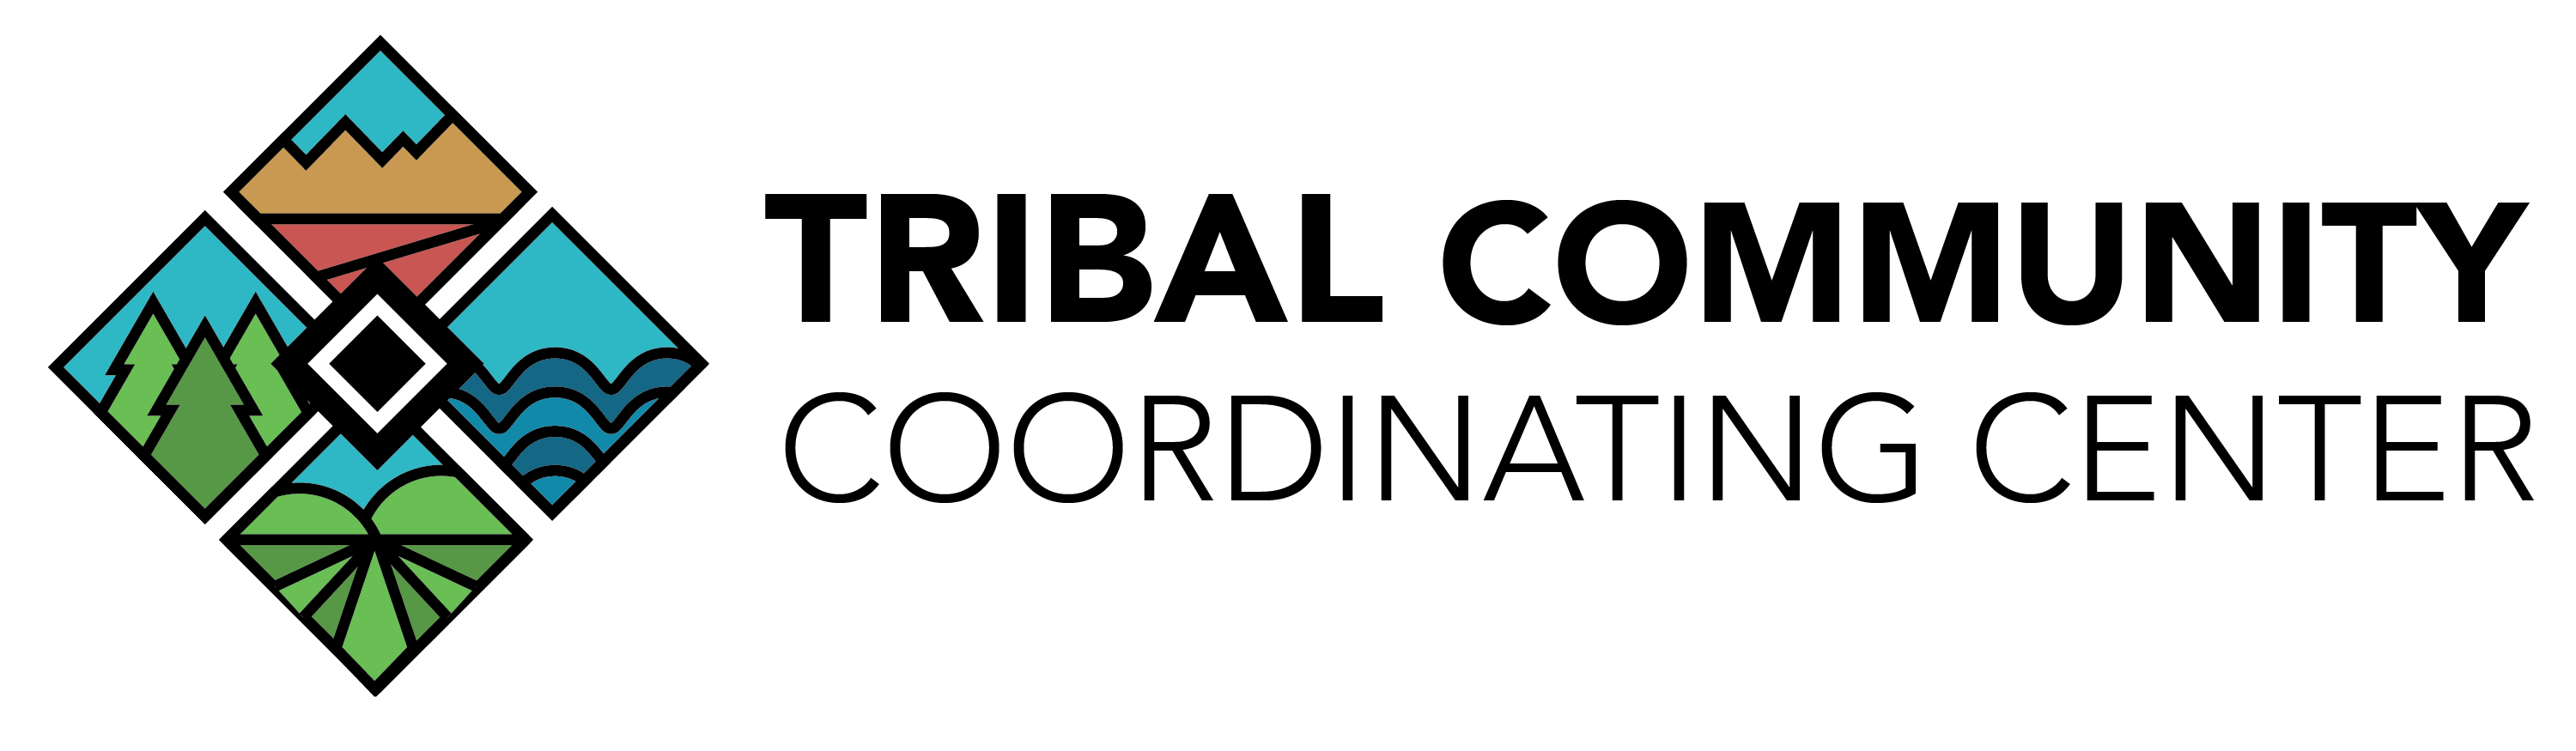 Tribal Community Coordinating Center logo